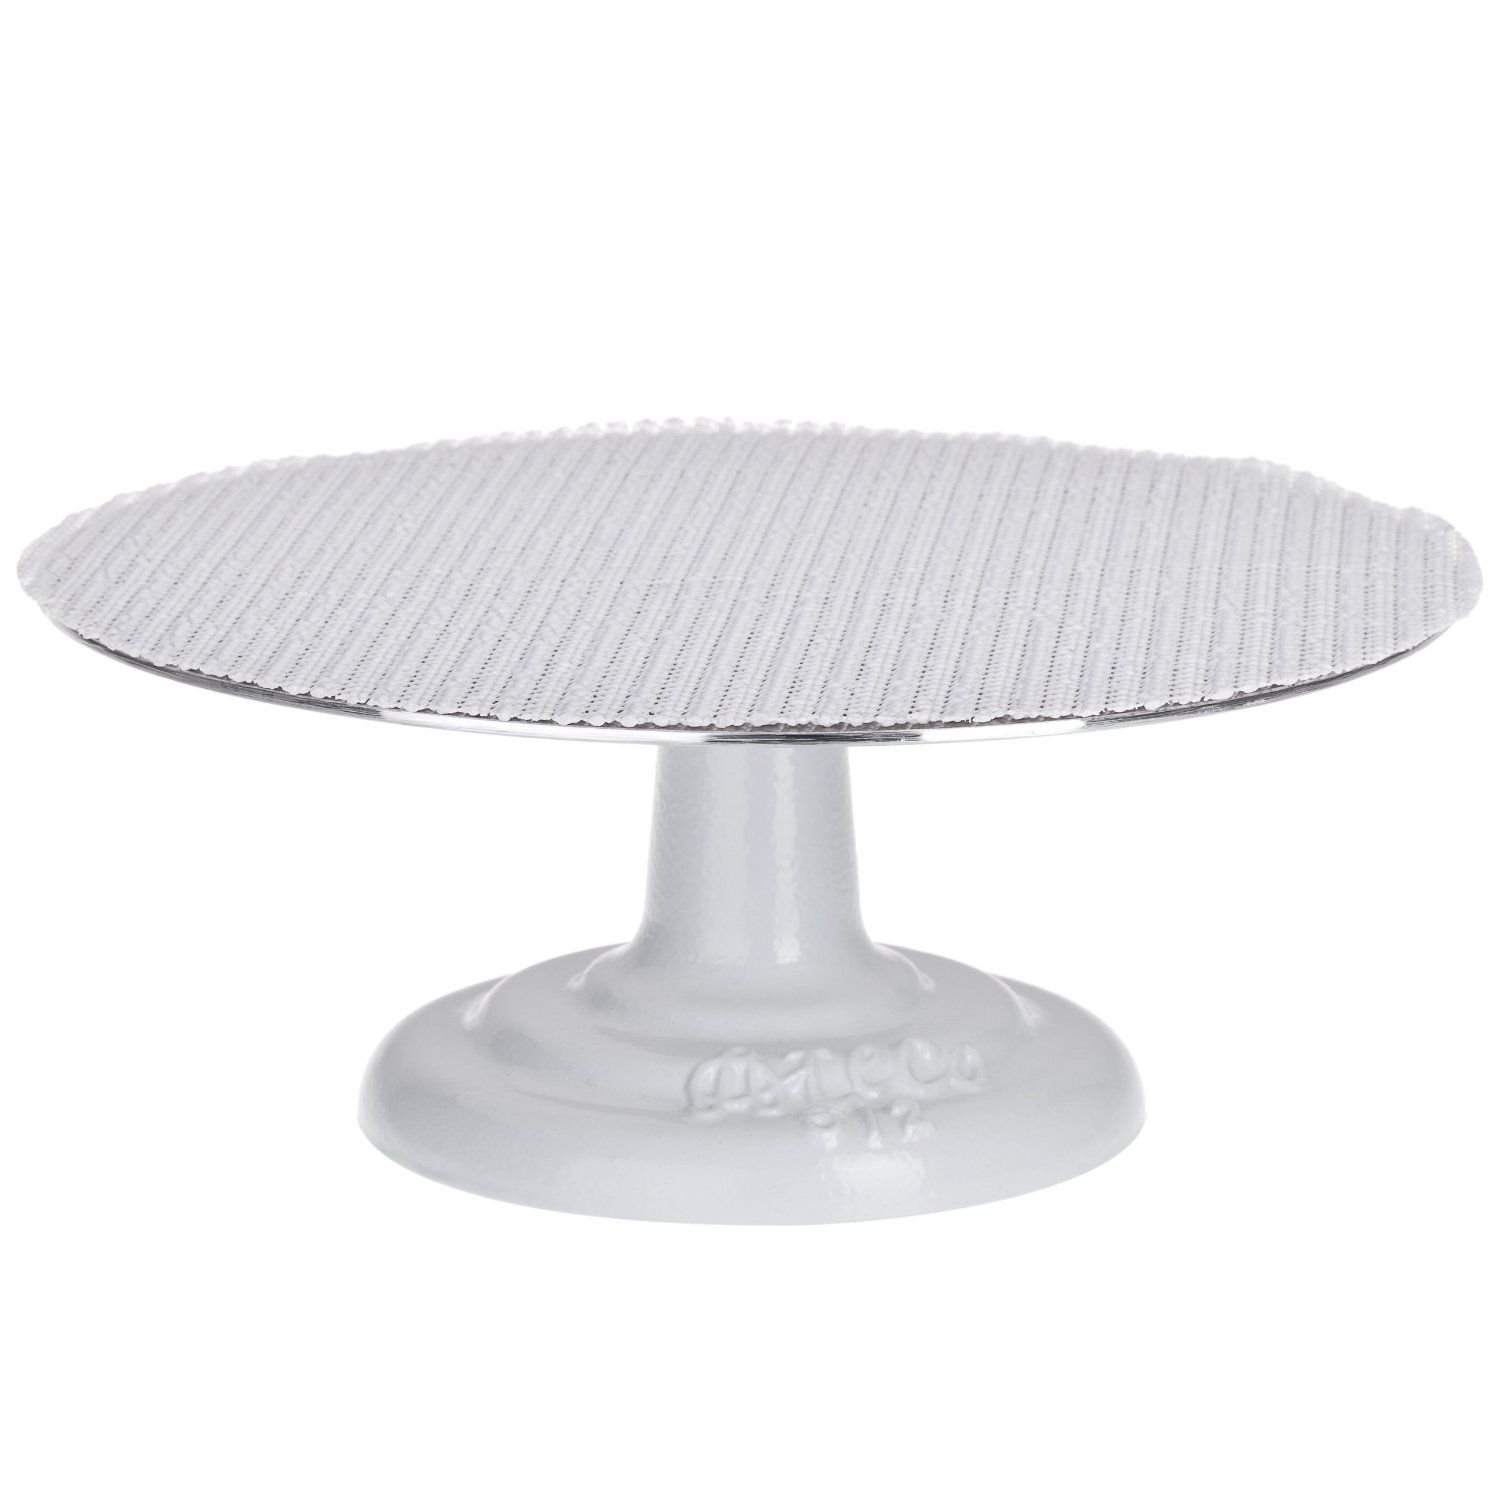 Uncategorized Best Cake Stands click on the link or image to see reviews of top 10 best cake stands